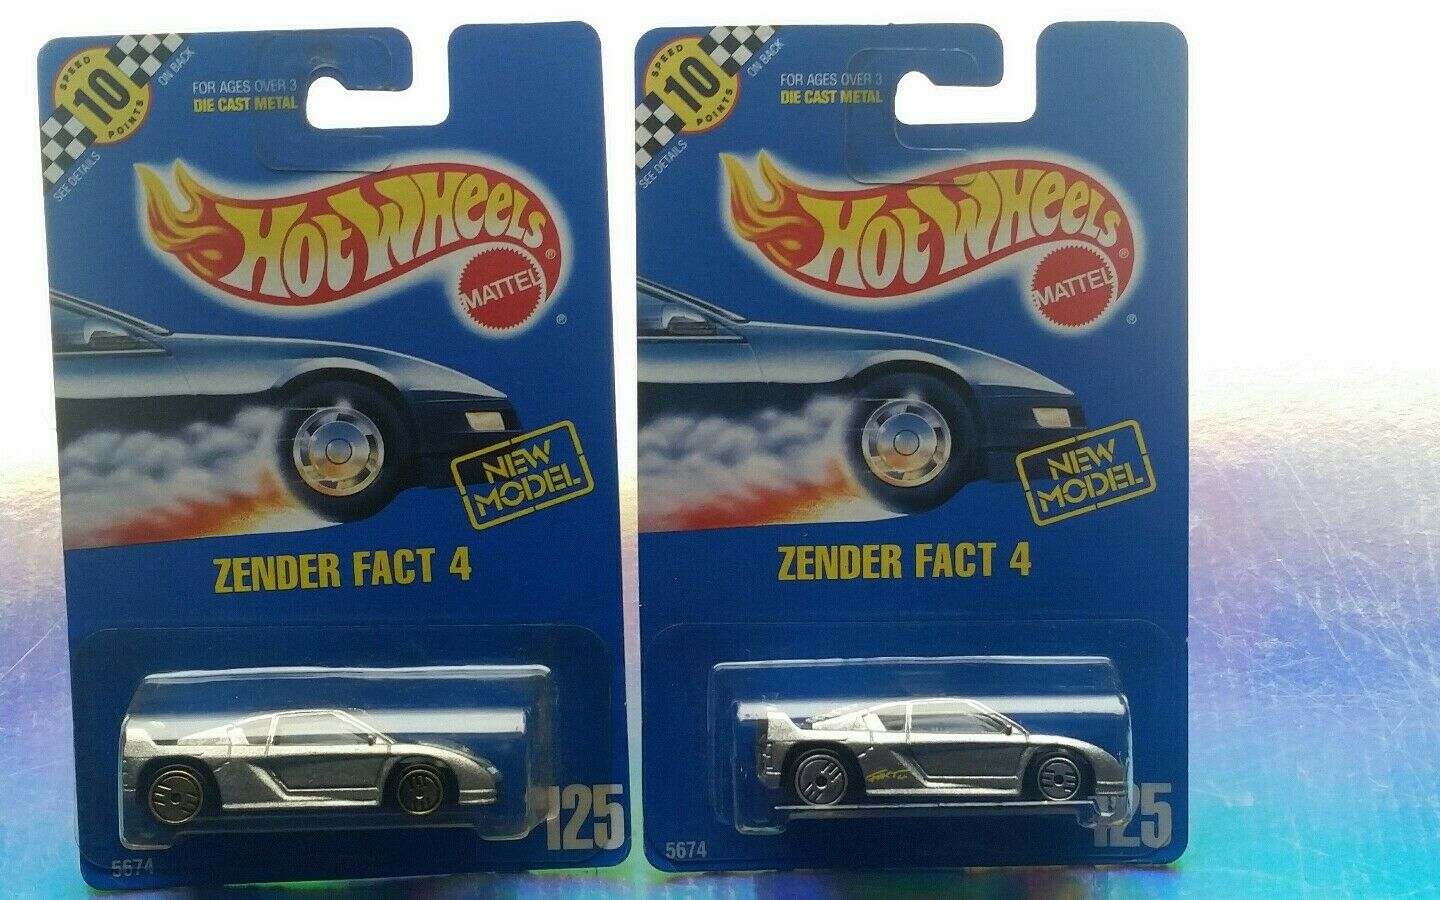 PAIR OF; ZENDER FACT FACT 4 blueE CARD 125HOT WHEELSRAREVHTFCOLLECTIBLENICEBP